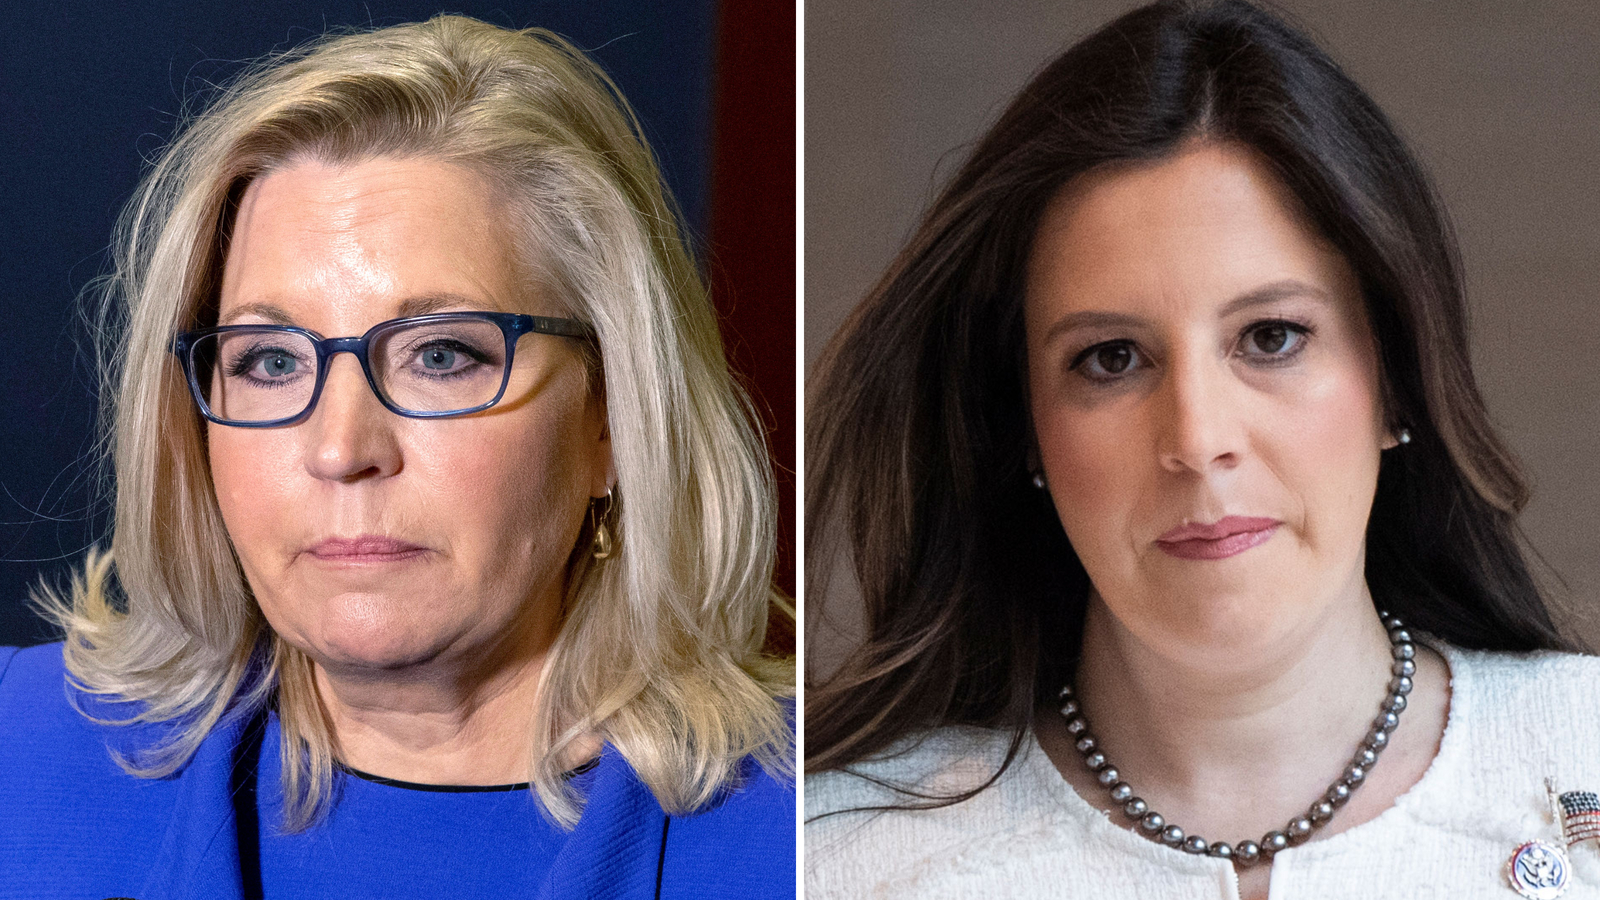 Ousted Cheney warns direction of the party is 'dangerous' as Stefanik calls on GOP to move on